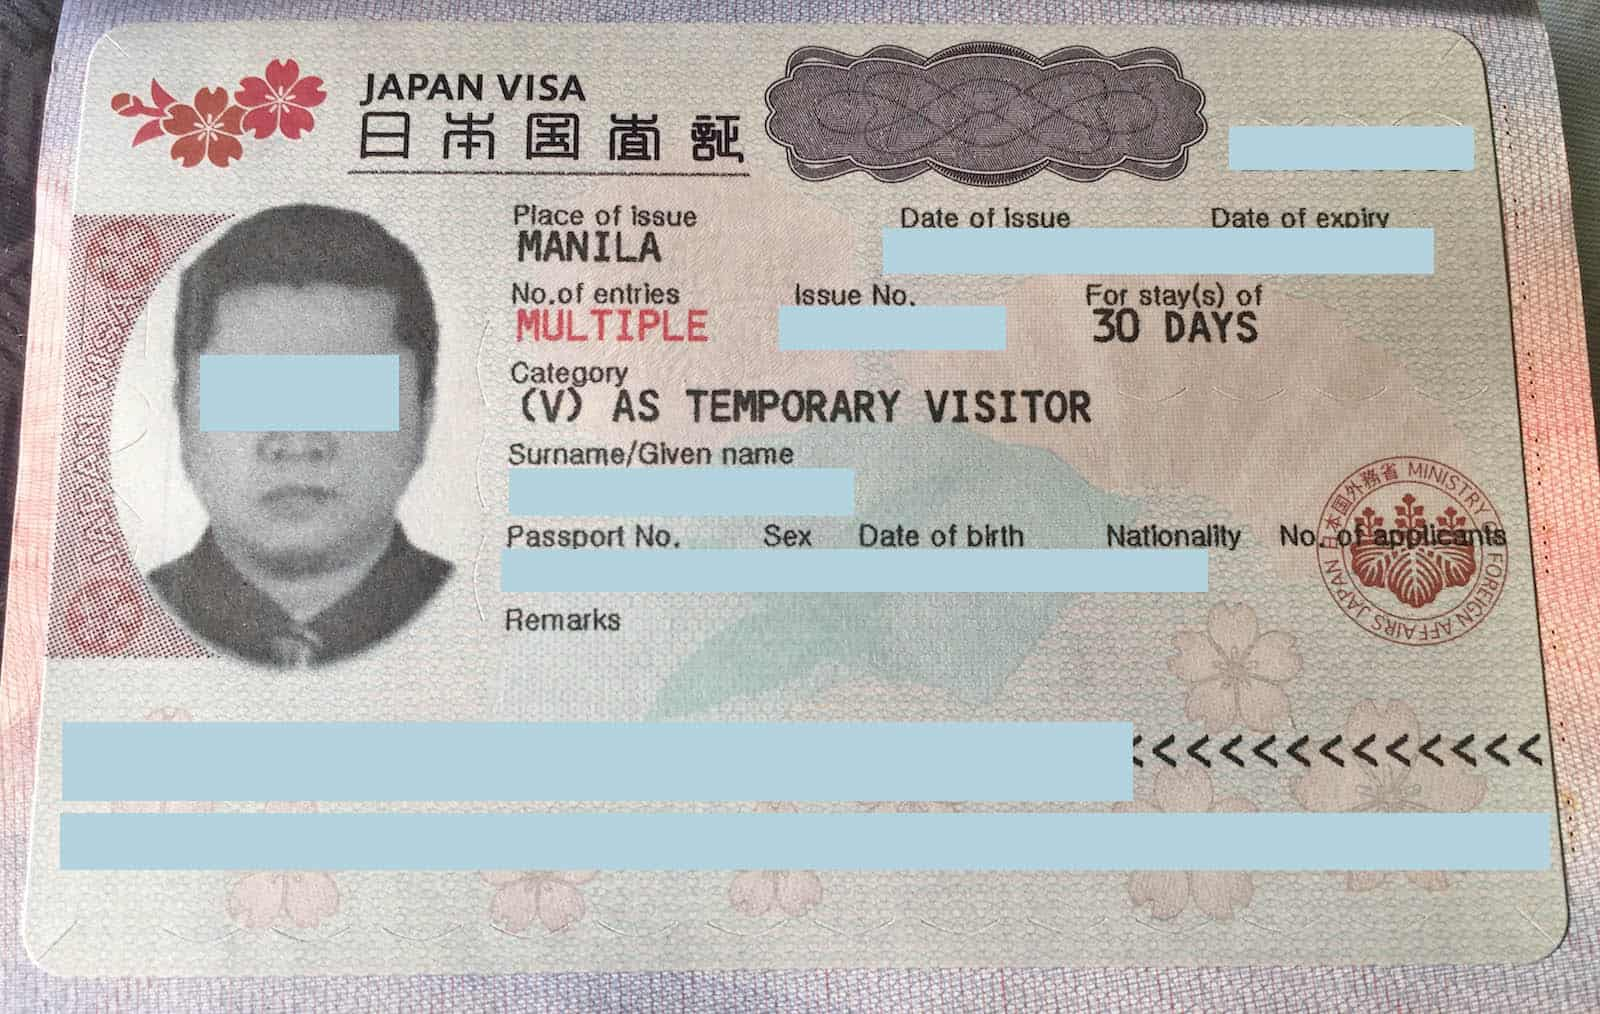 VISA APPLICATION DENIED: 10 Common Reasons and How to Avoid